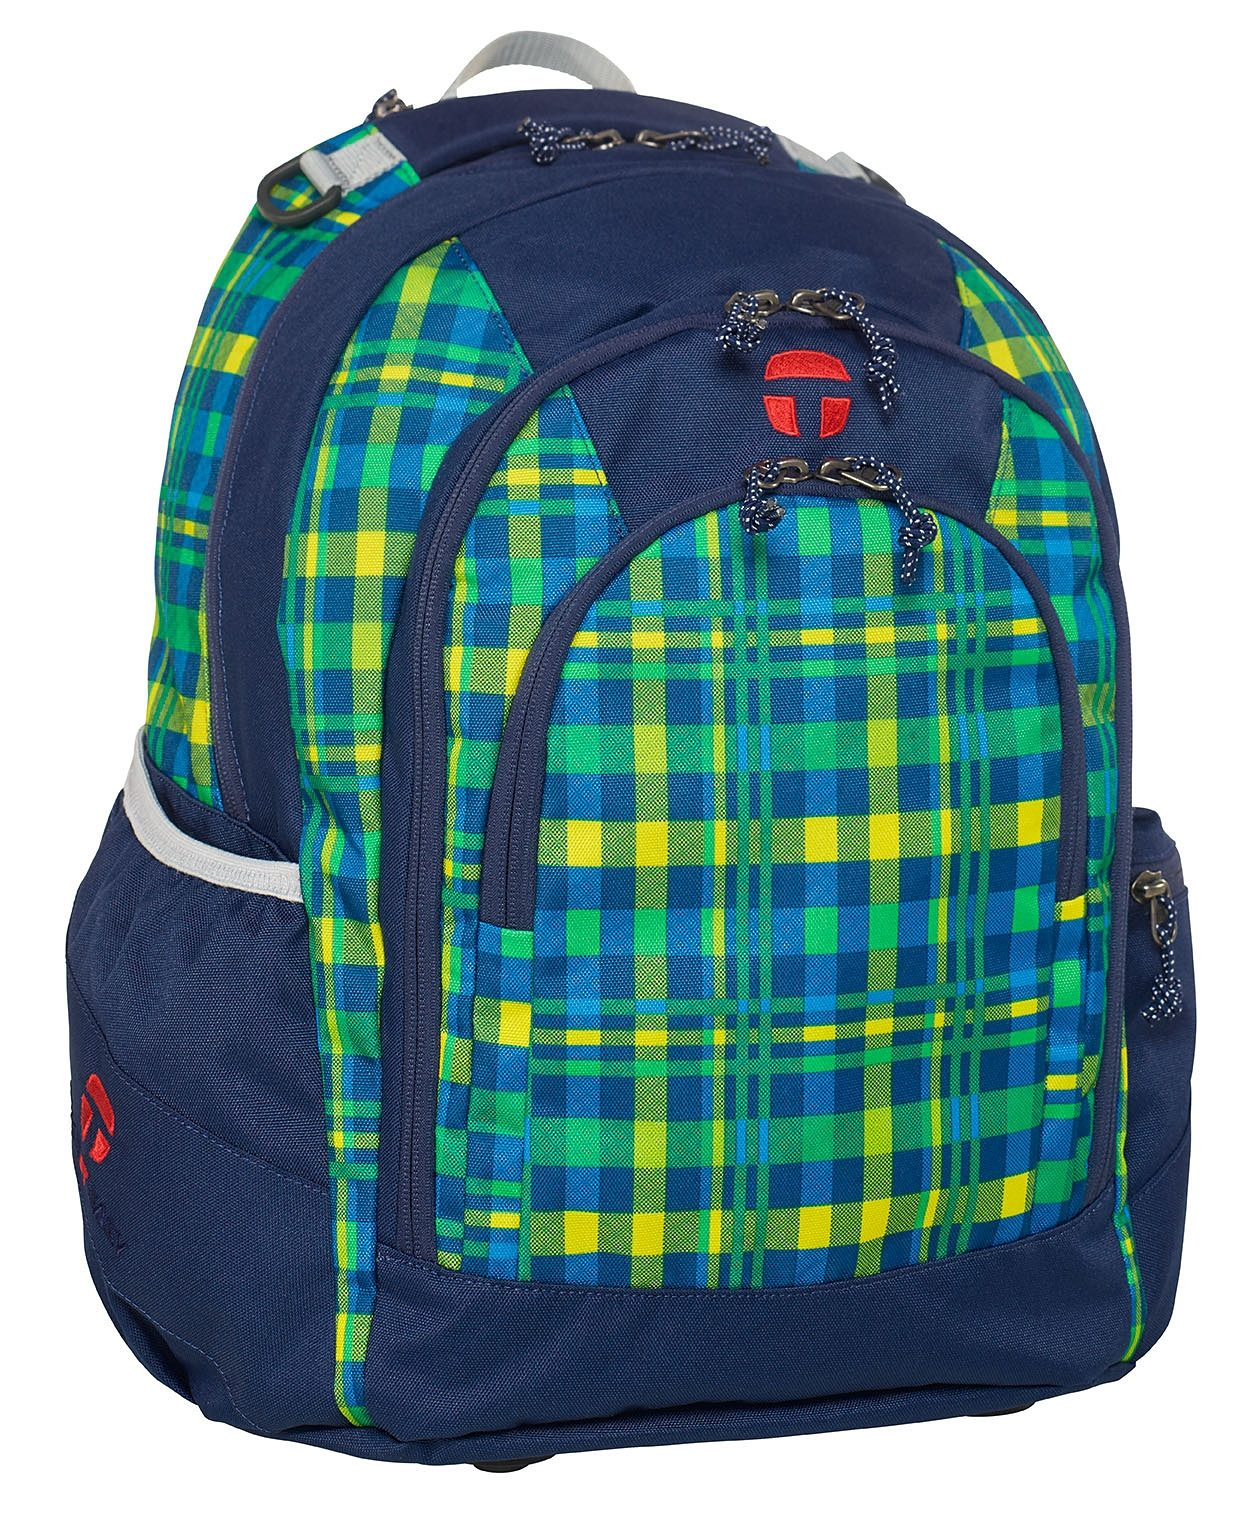 TAKE IT EASY® Schulrucksack, »Berlin crossy«